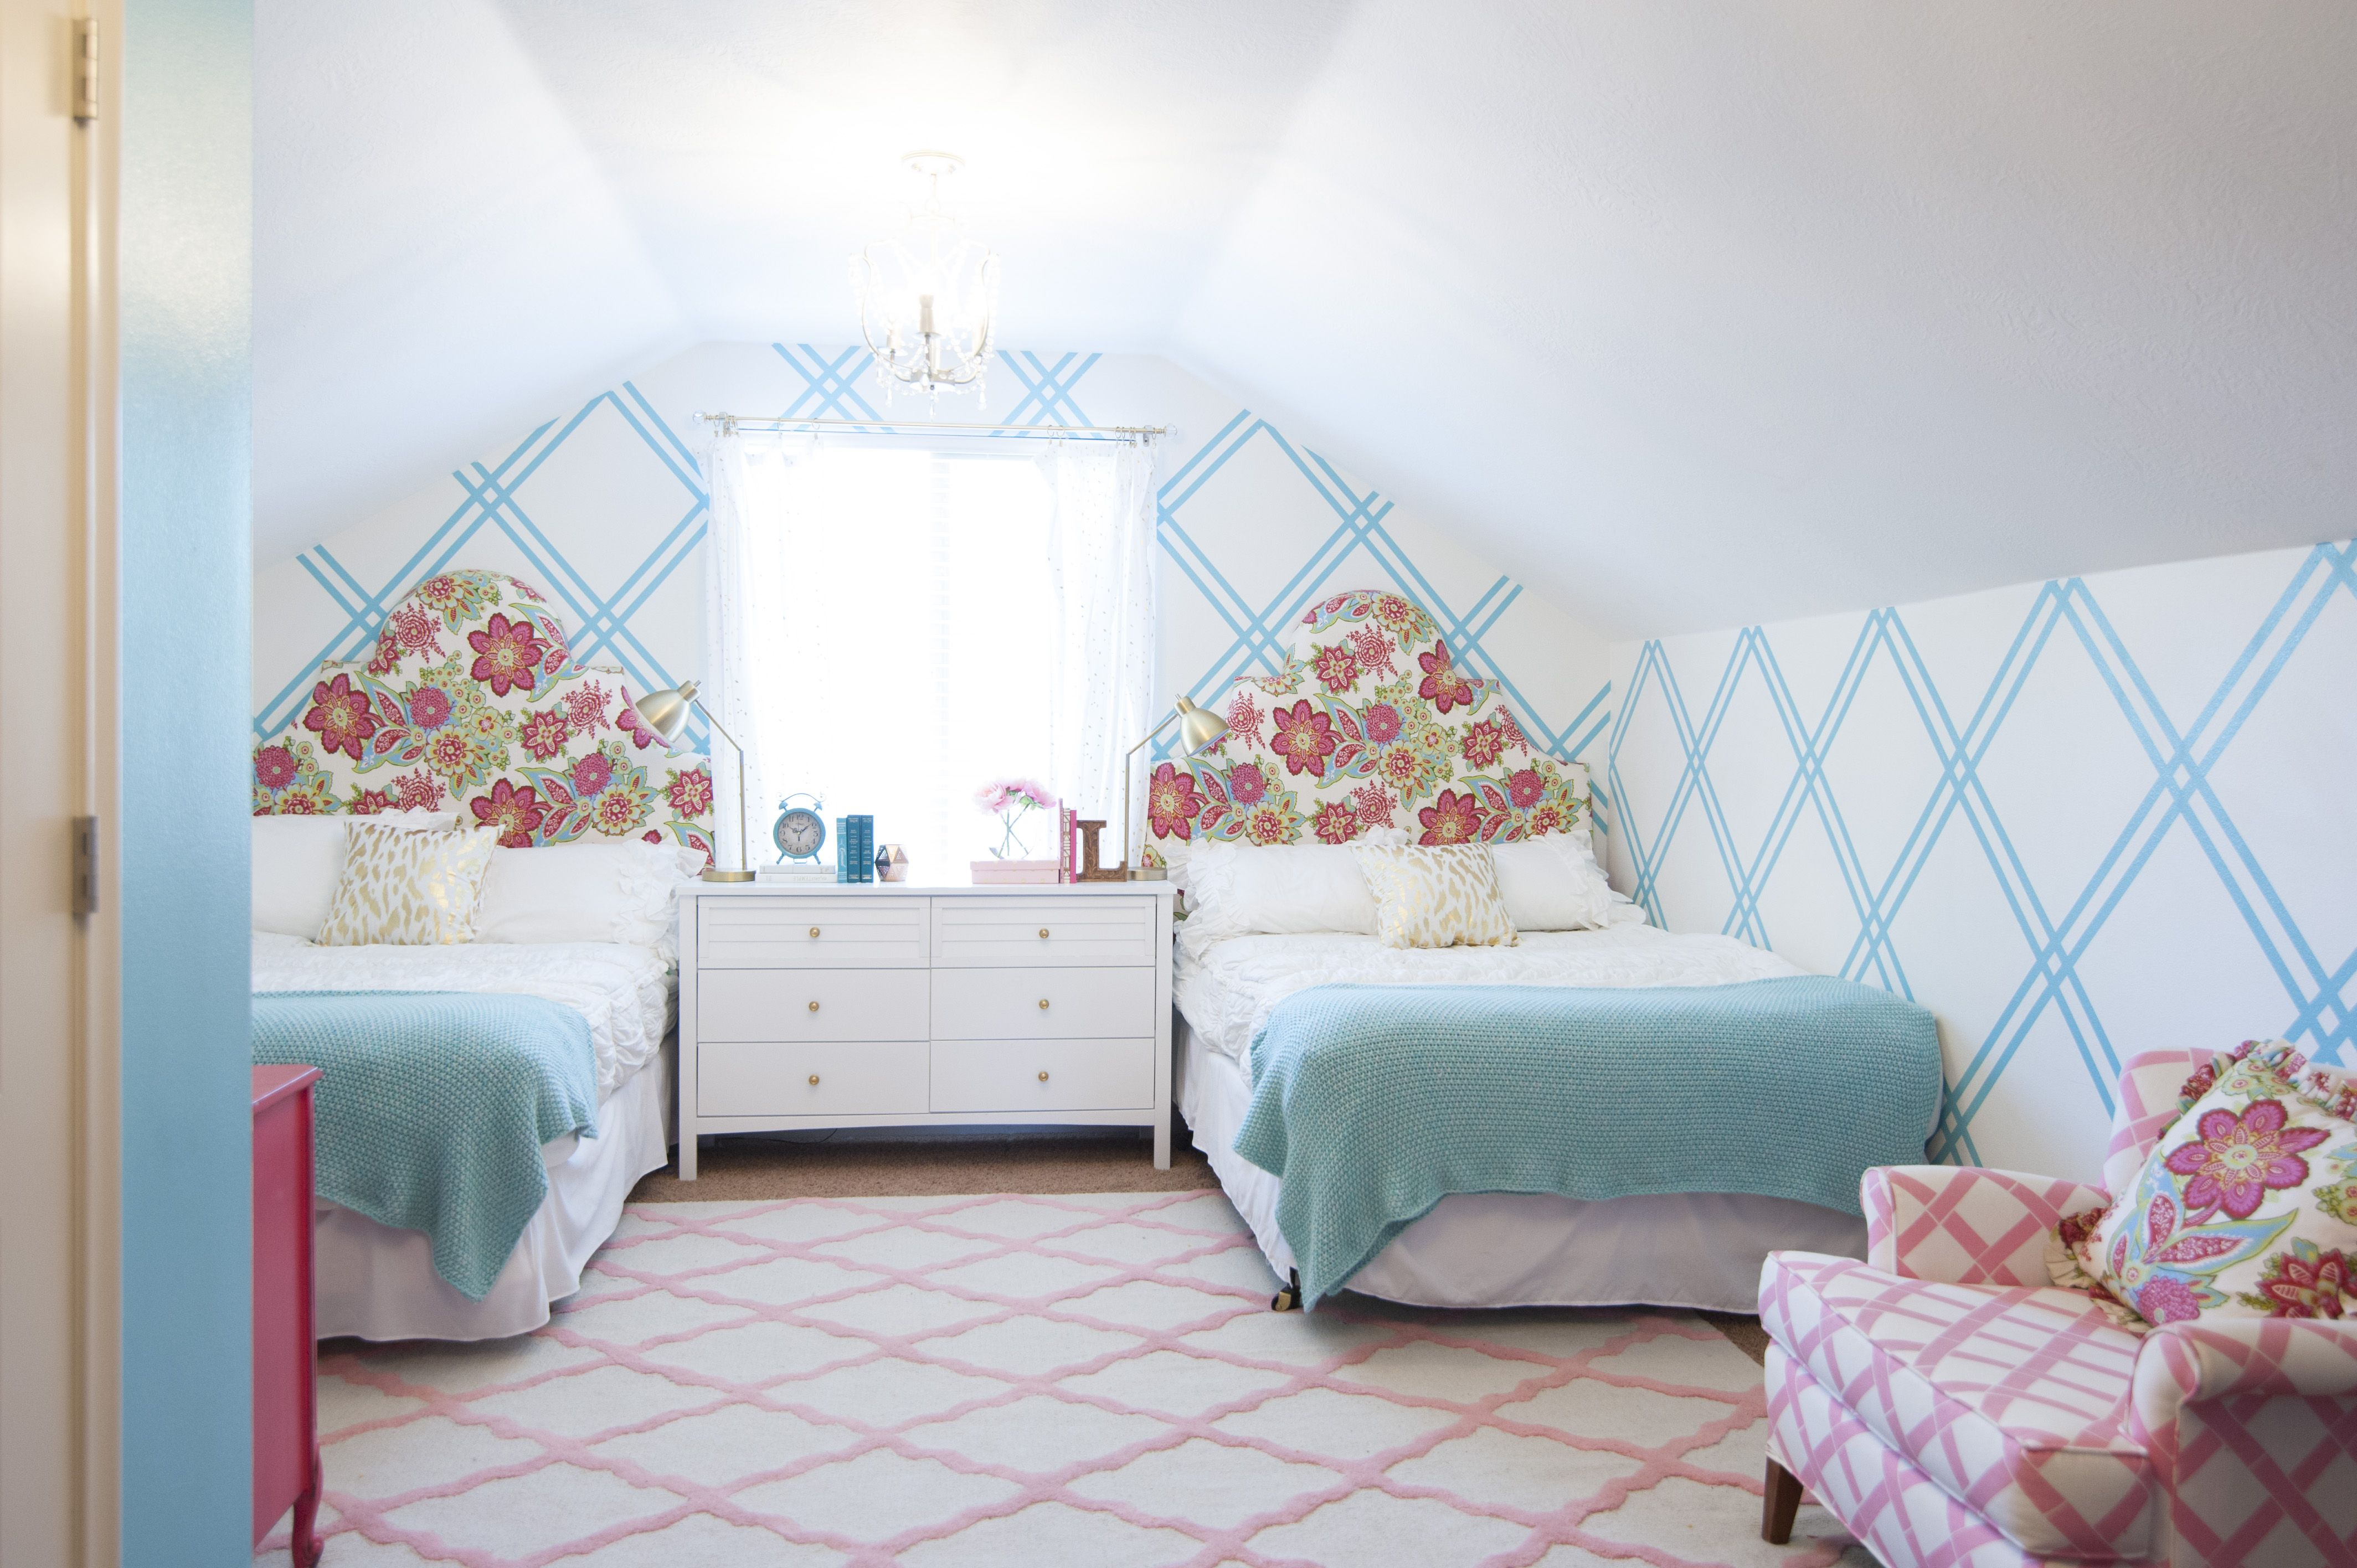 16 Colorful Girls Bedroom Ideas 16 Colorful